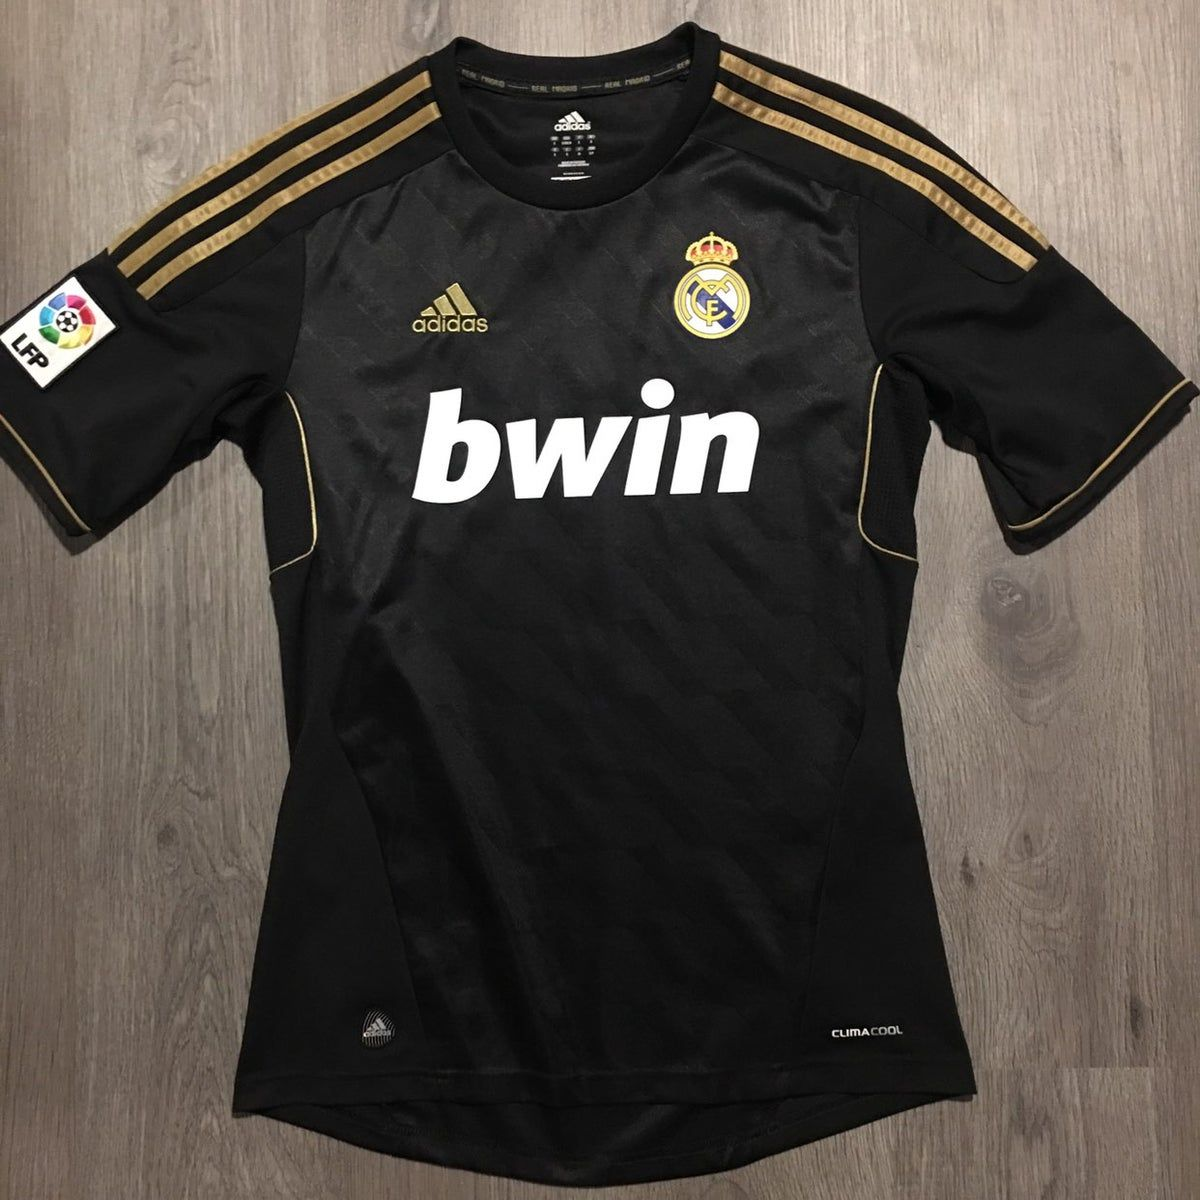 Real Madrid Away 2011 2012 Jersey In 2020 Real Madrid Real Madrid 2011 Jersey